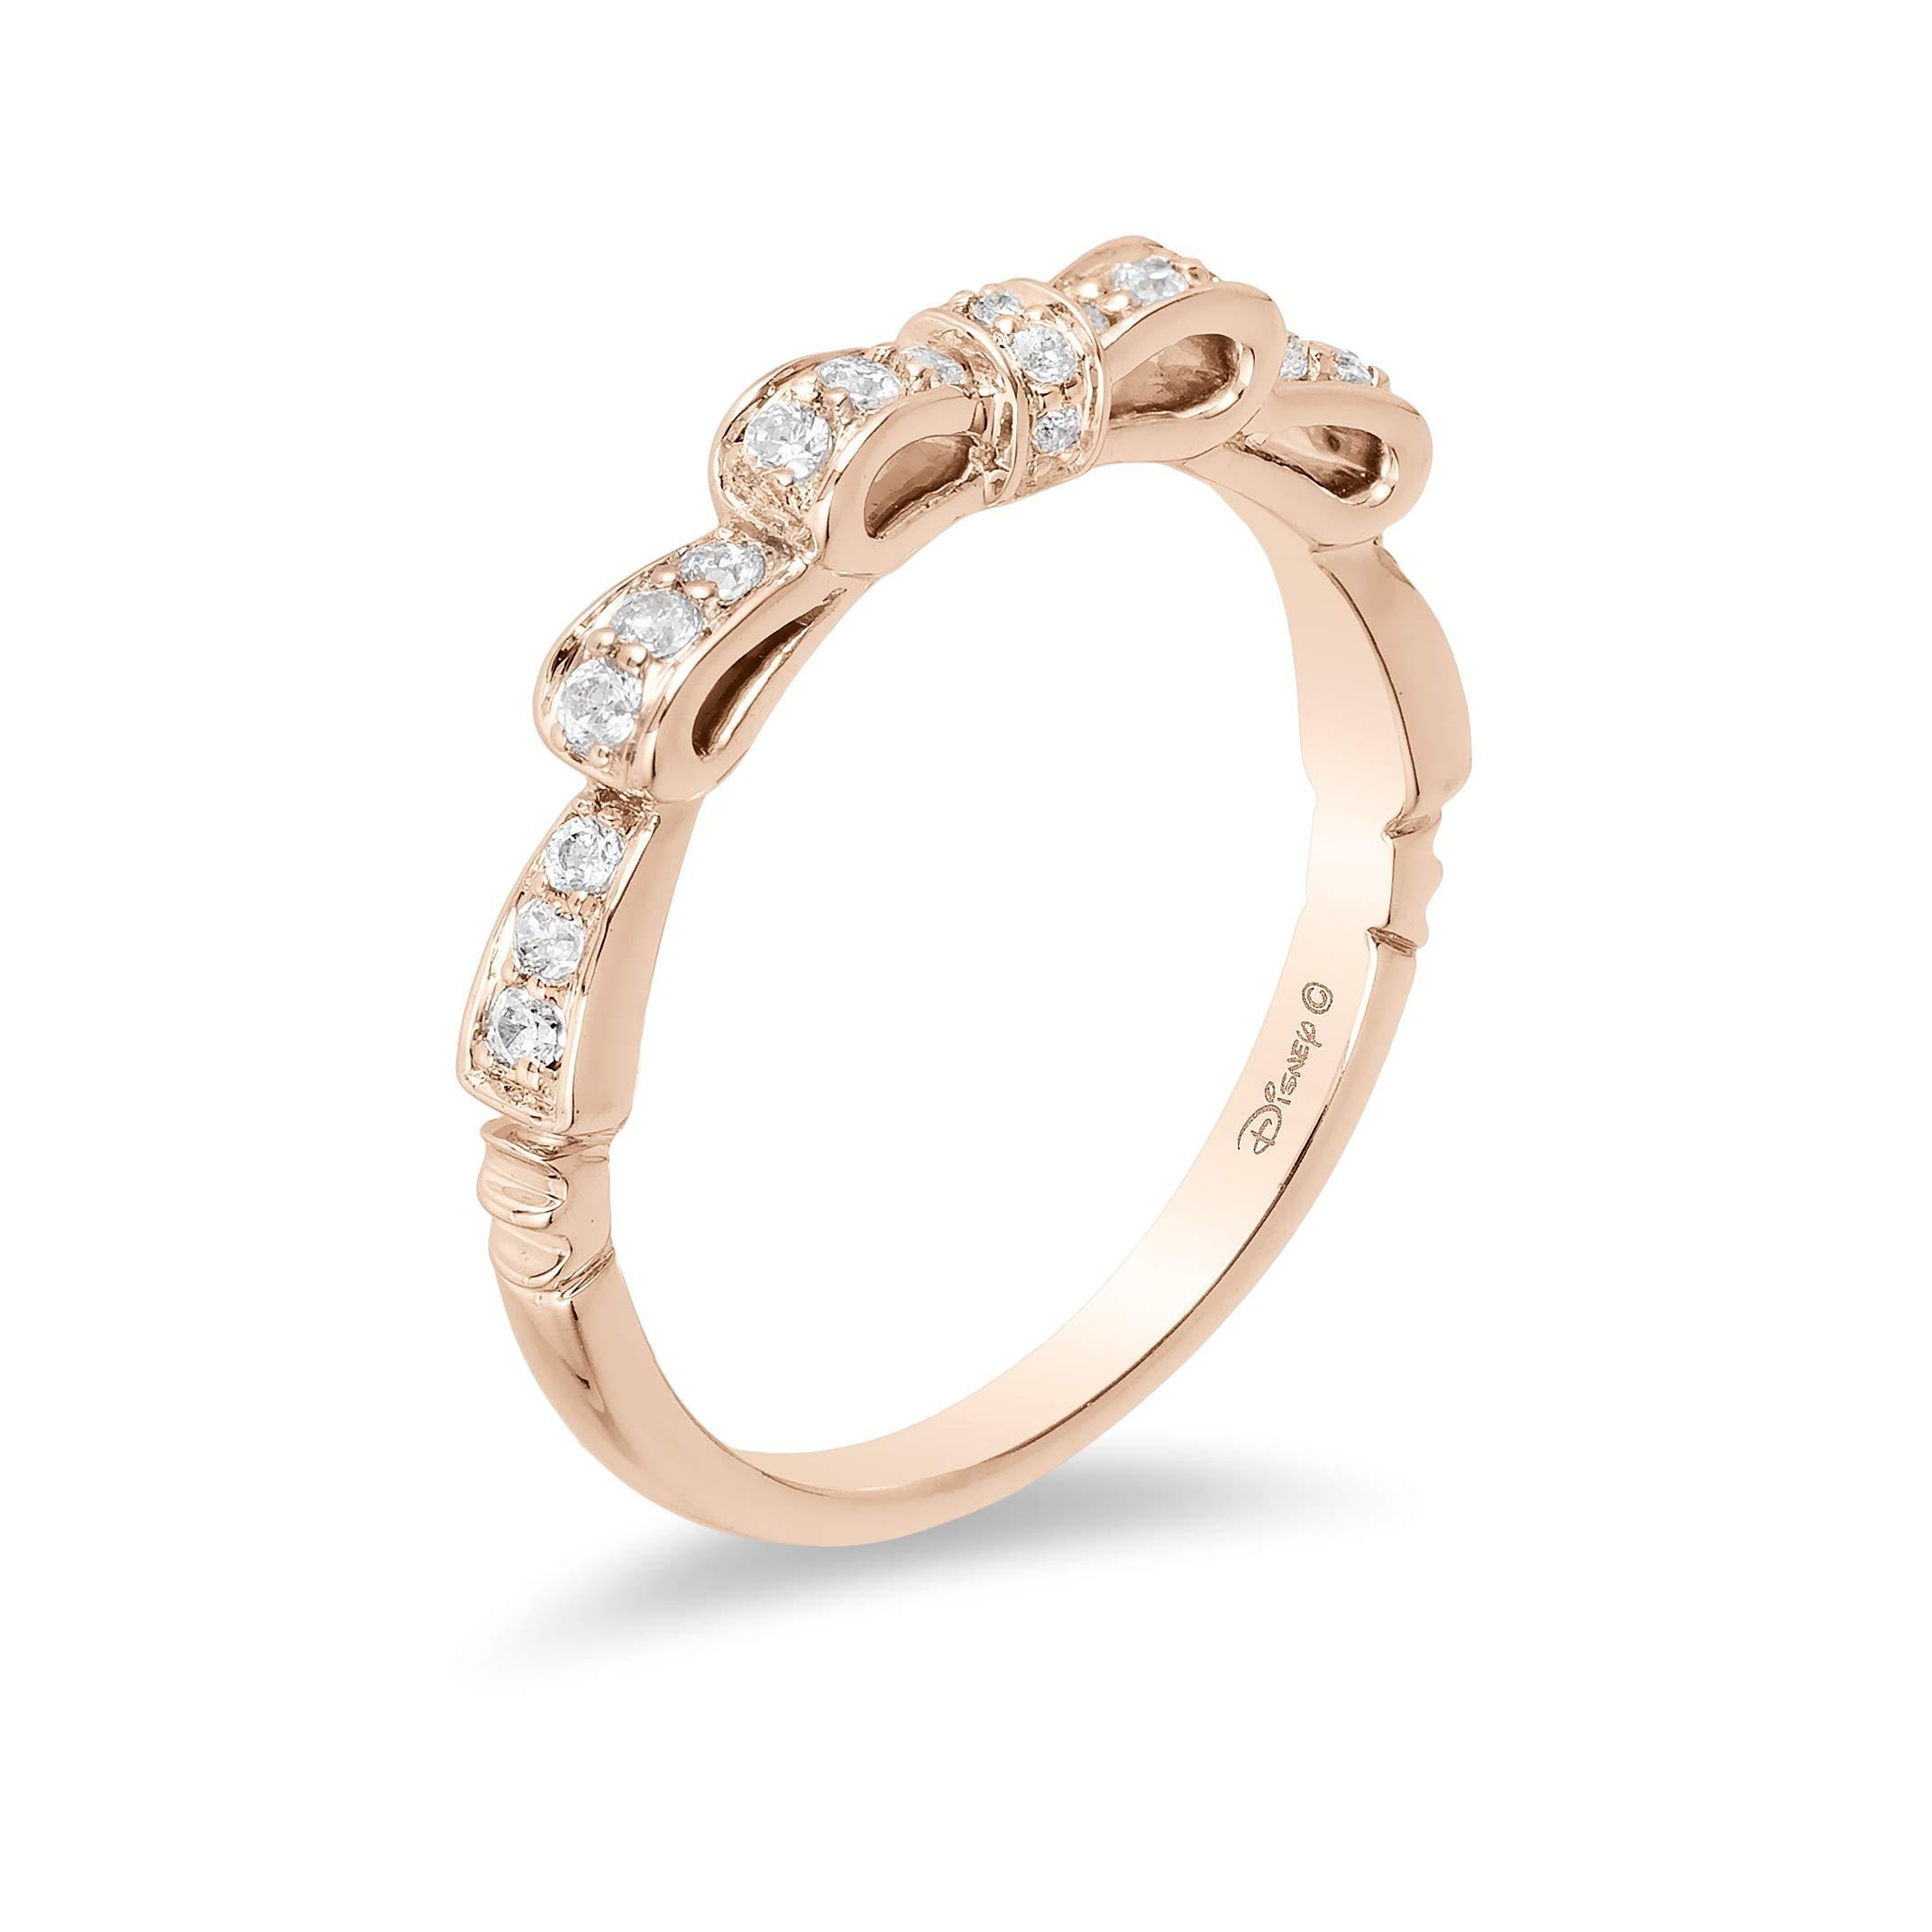 enchanted_disney-snow-white_bow_ring-14k_rose_gold_0.25CTTW_2